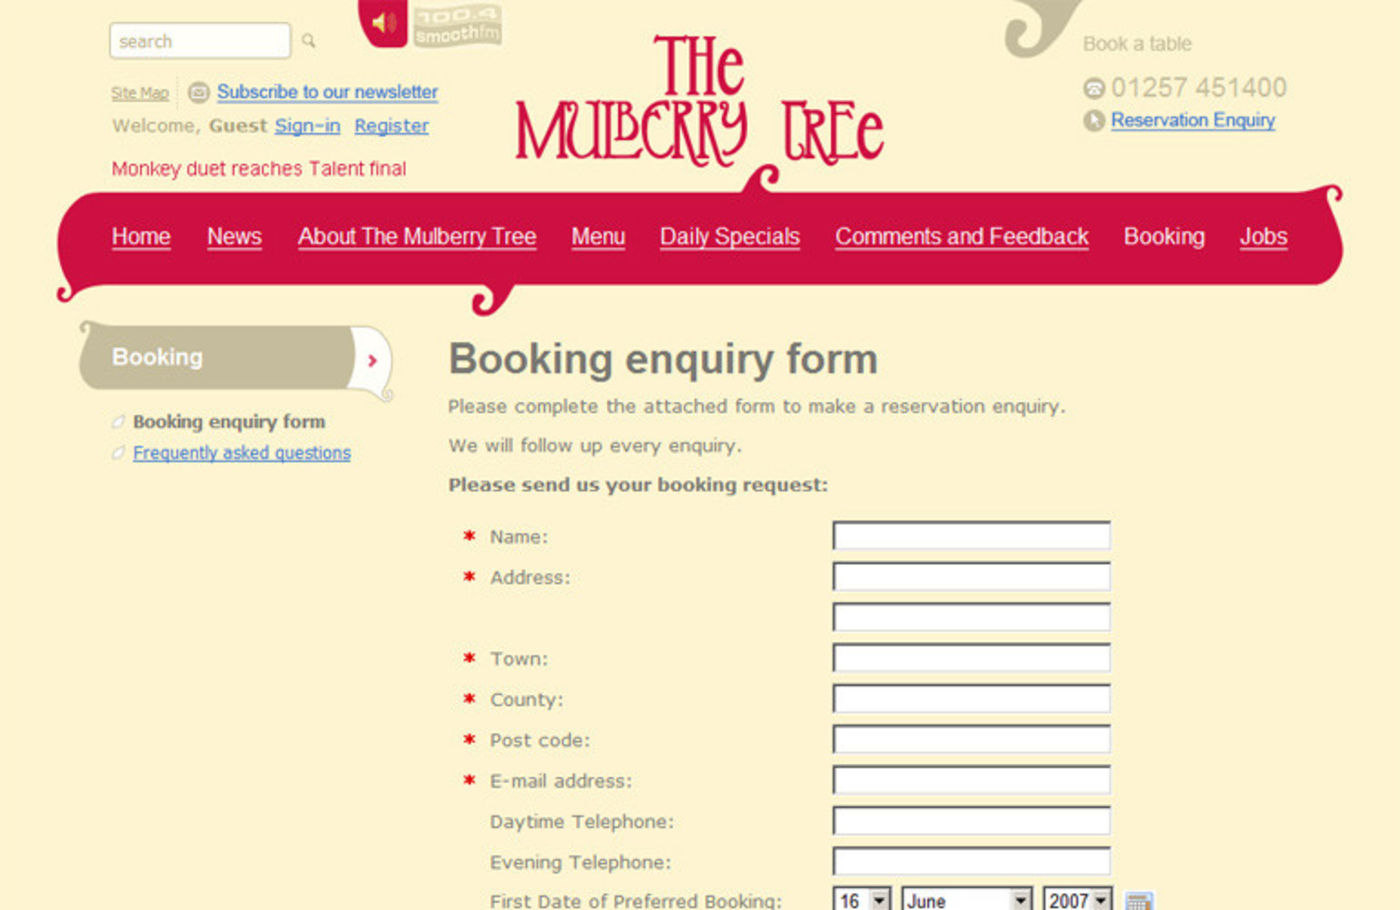 The Mulberry Tree Booking enquiry form